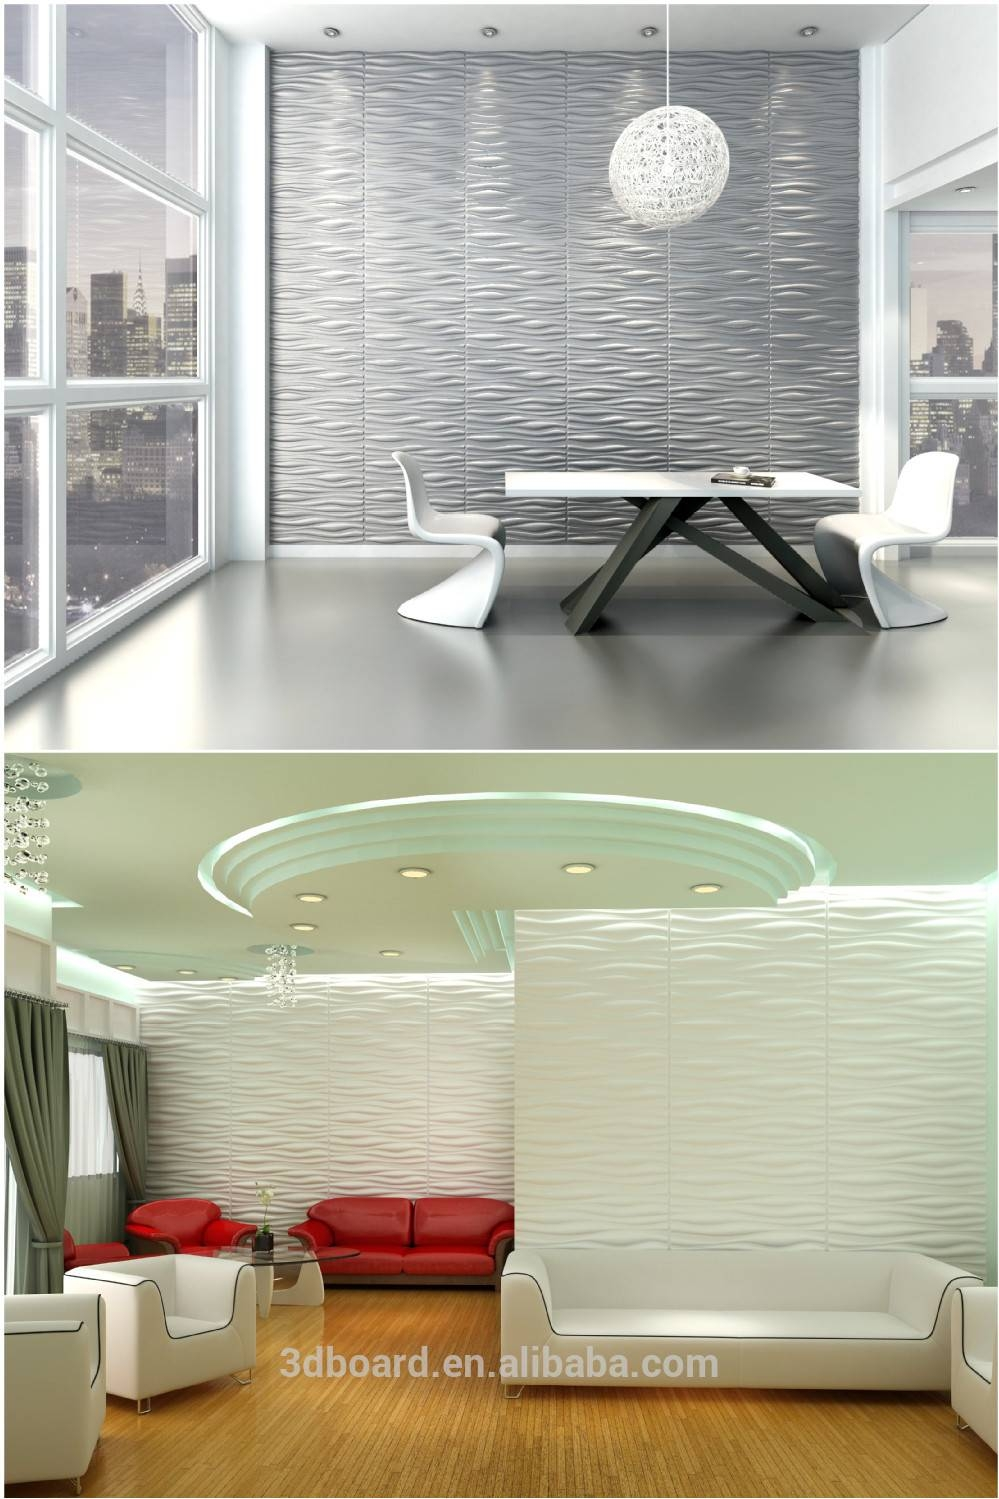 Modern Wall Art Decor Interior 3D Effect Wall Panels For Home Throughout Latest 3D Wall Art And Interiors (View 14 of 20)